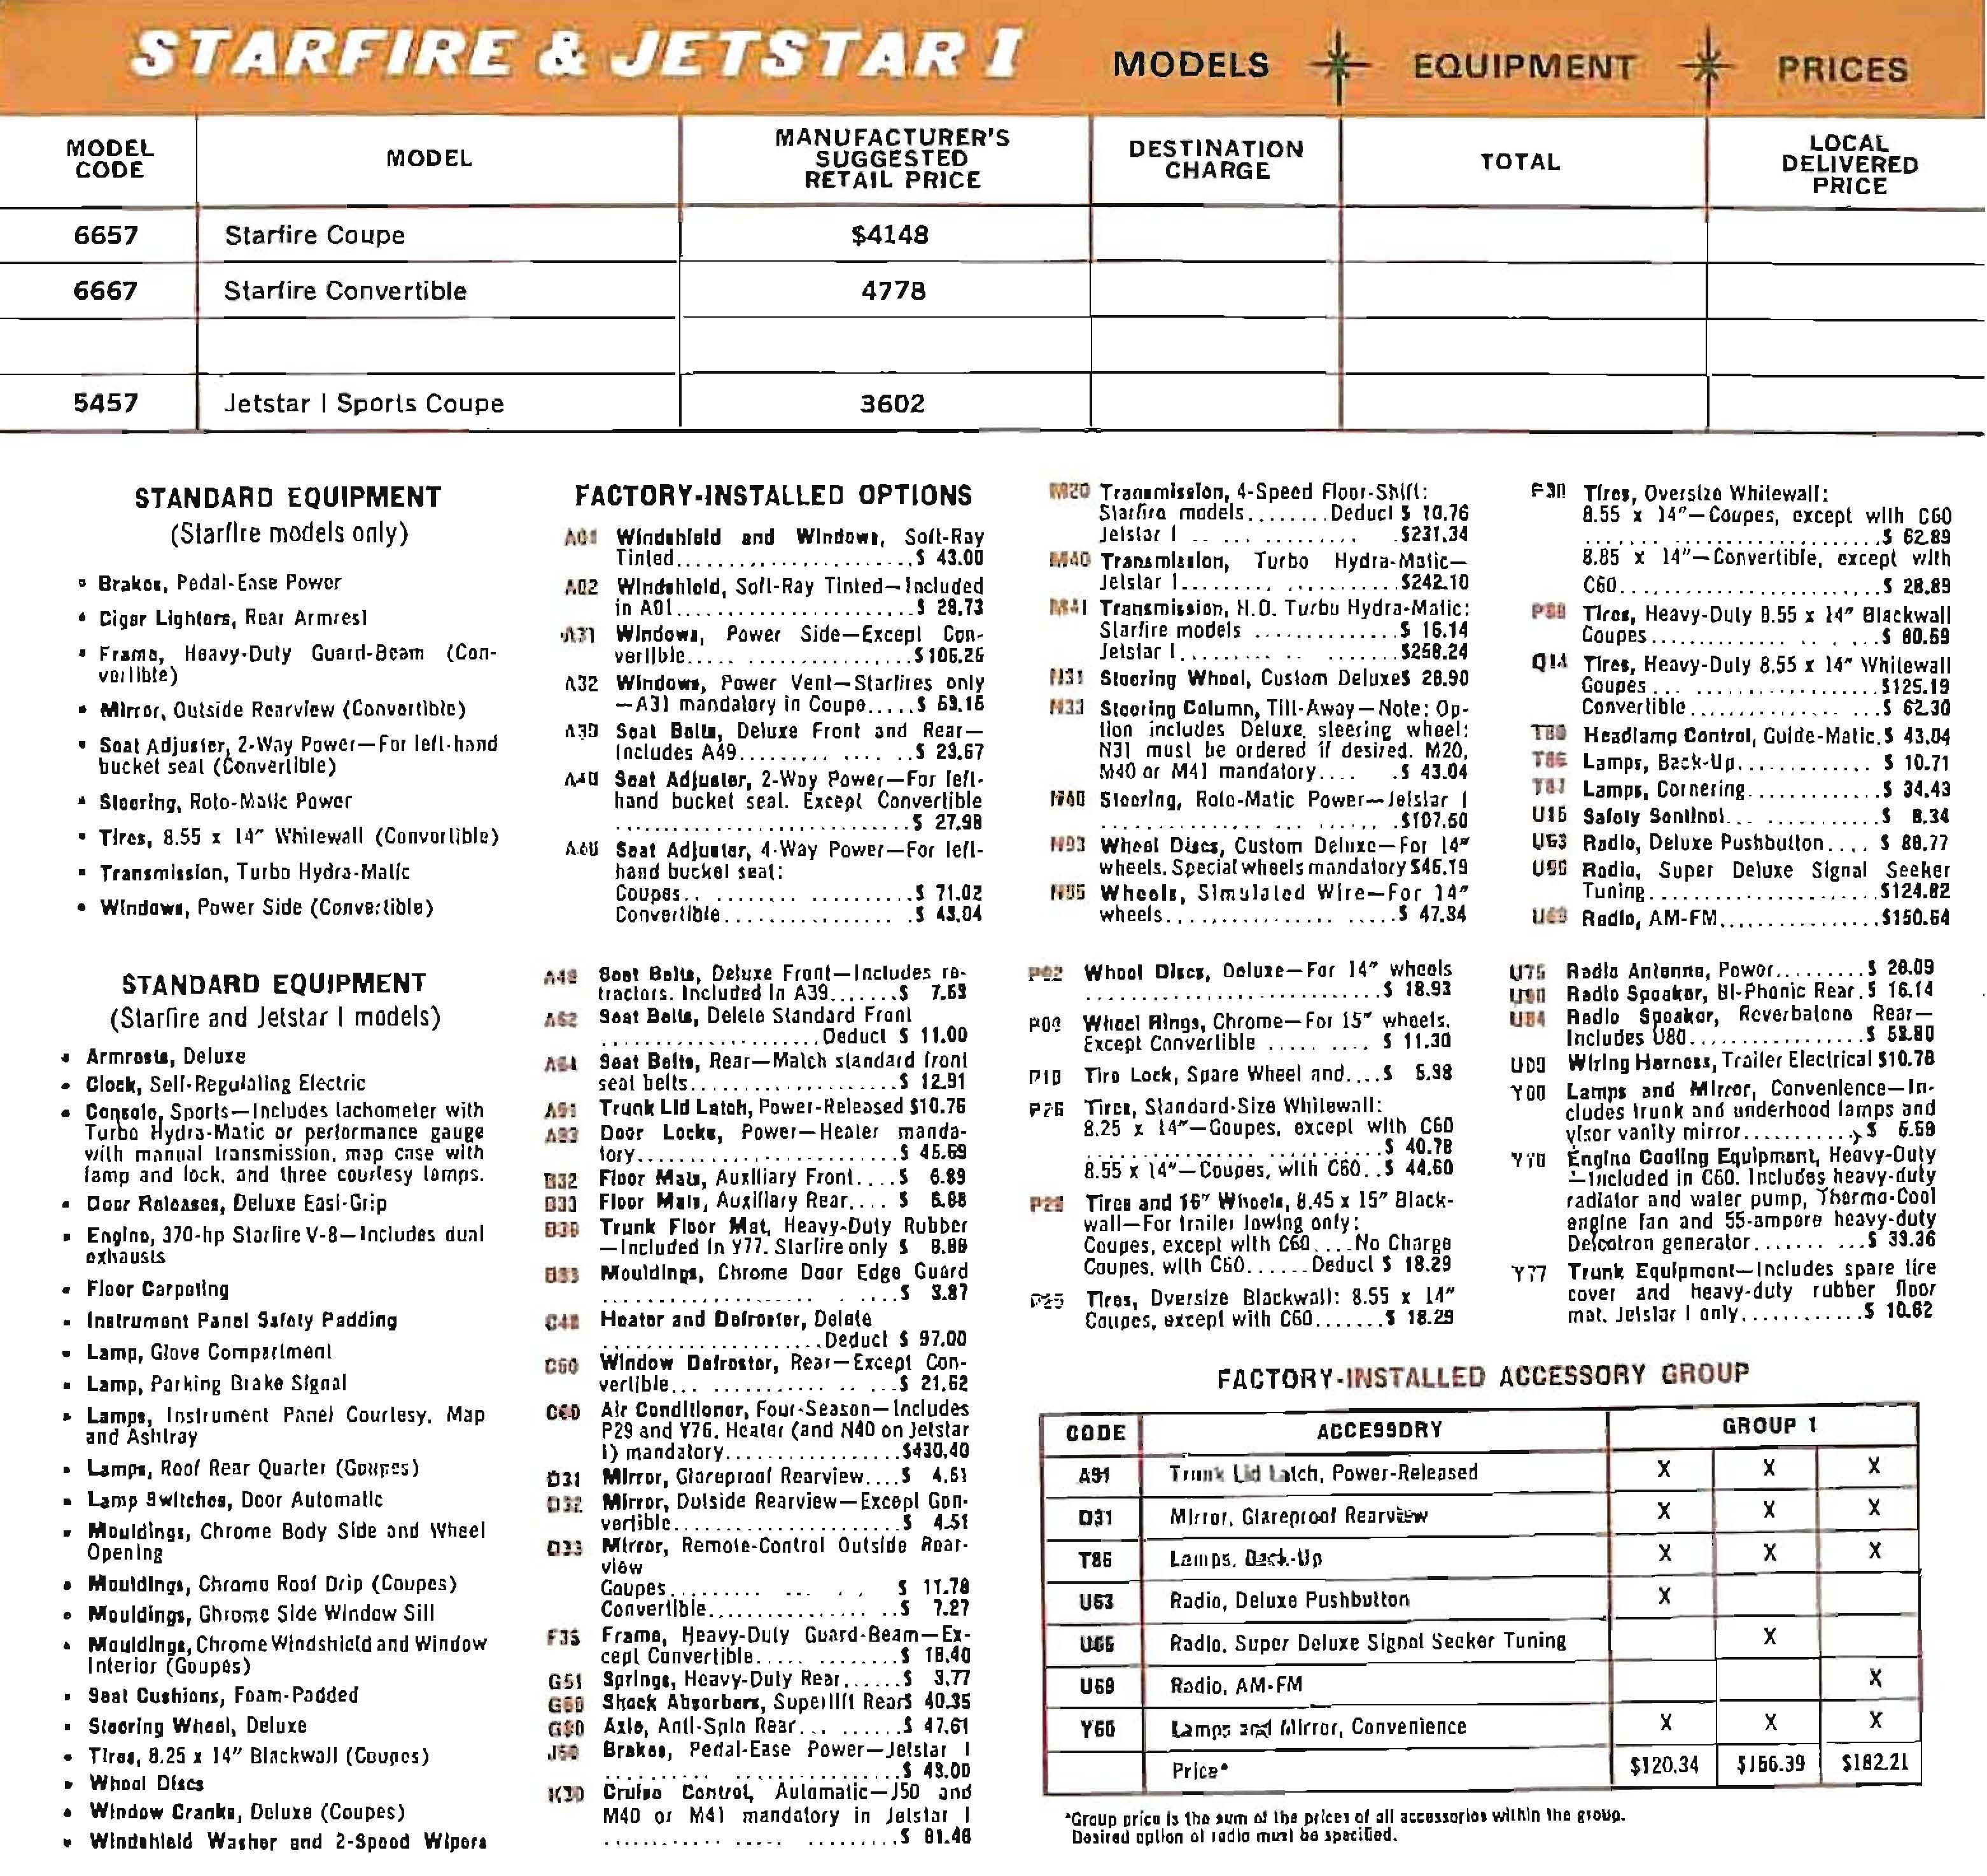 1965_Oldsmobile_Dealer_SPECS-10.jpg